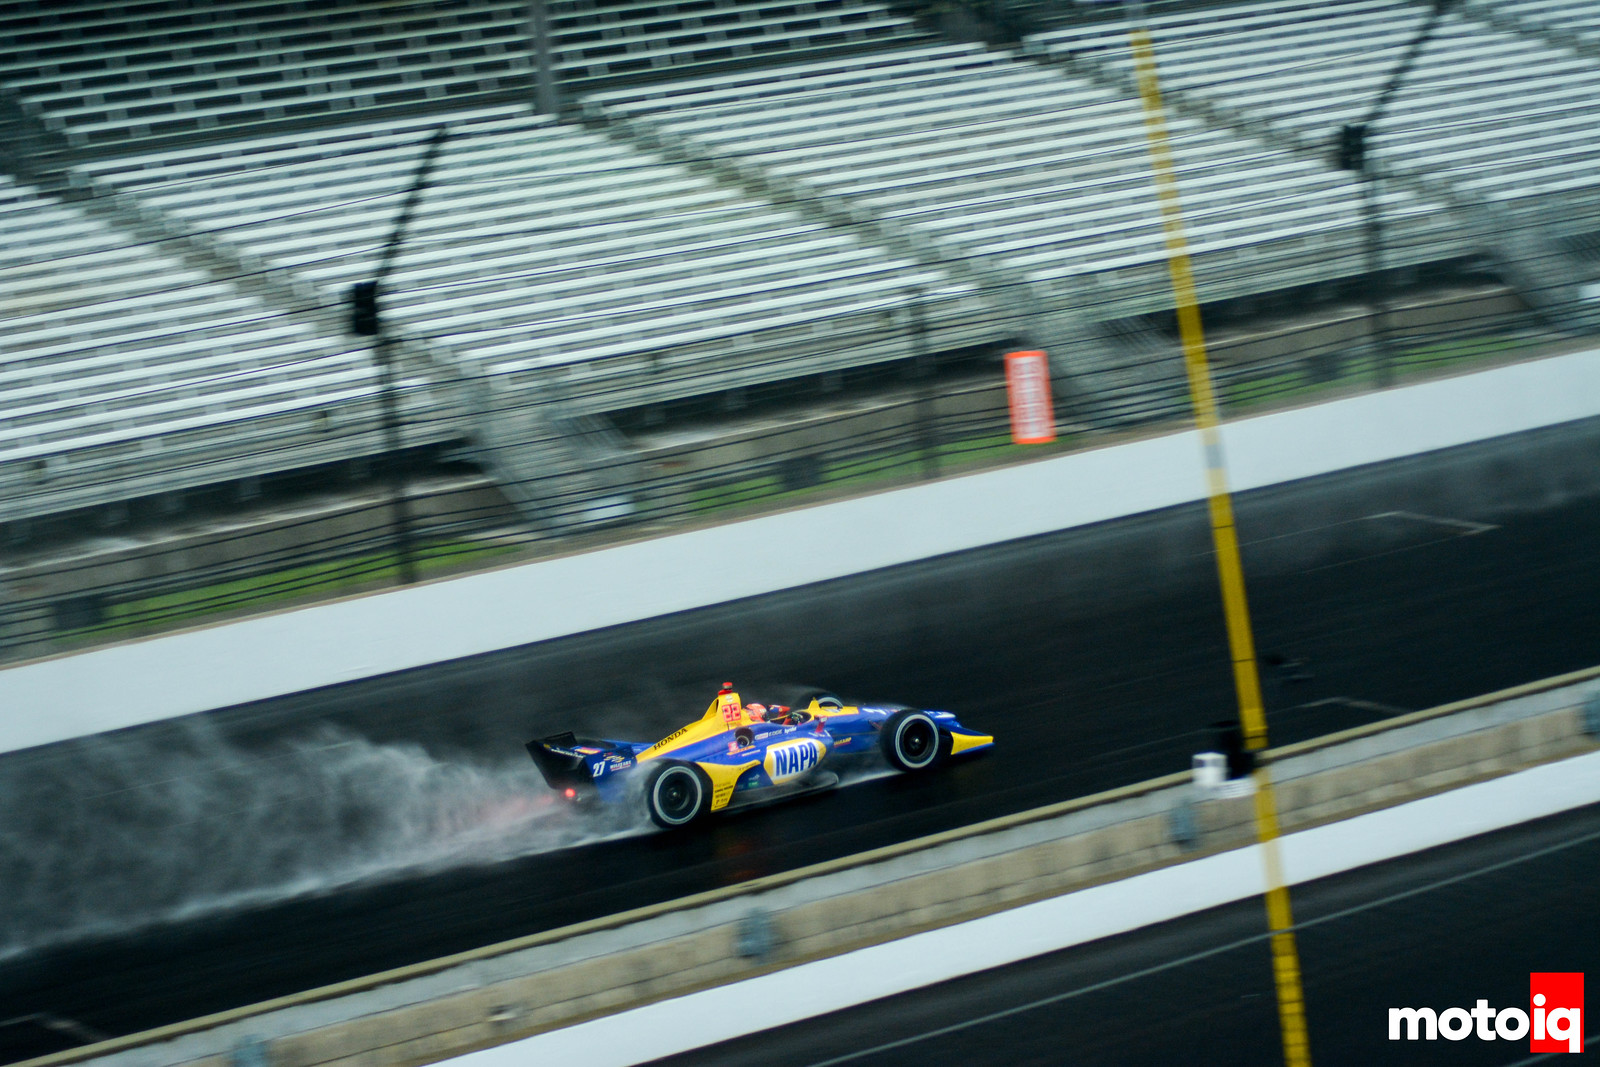 Alexander Rossi in the Wet